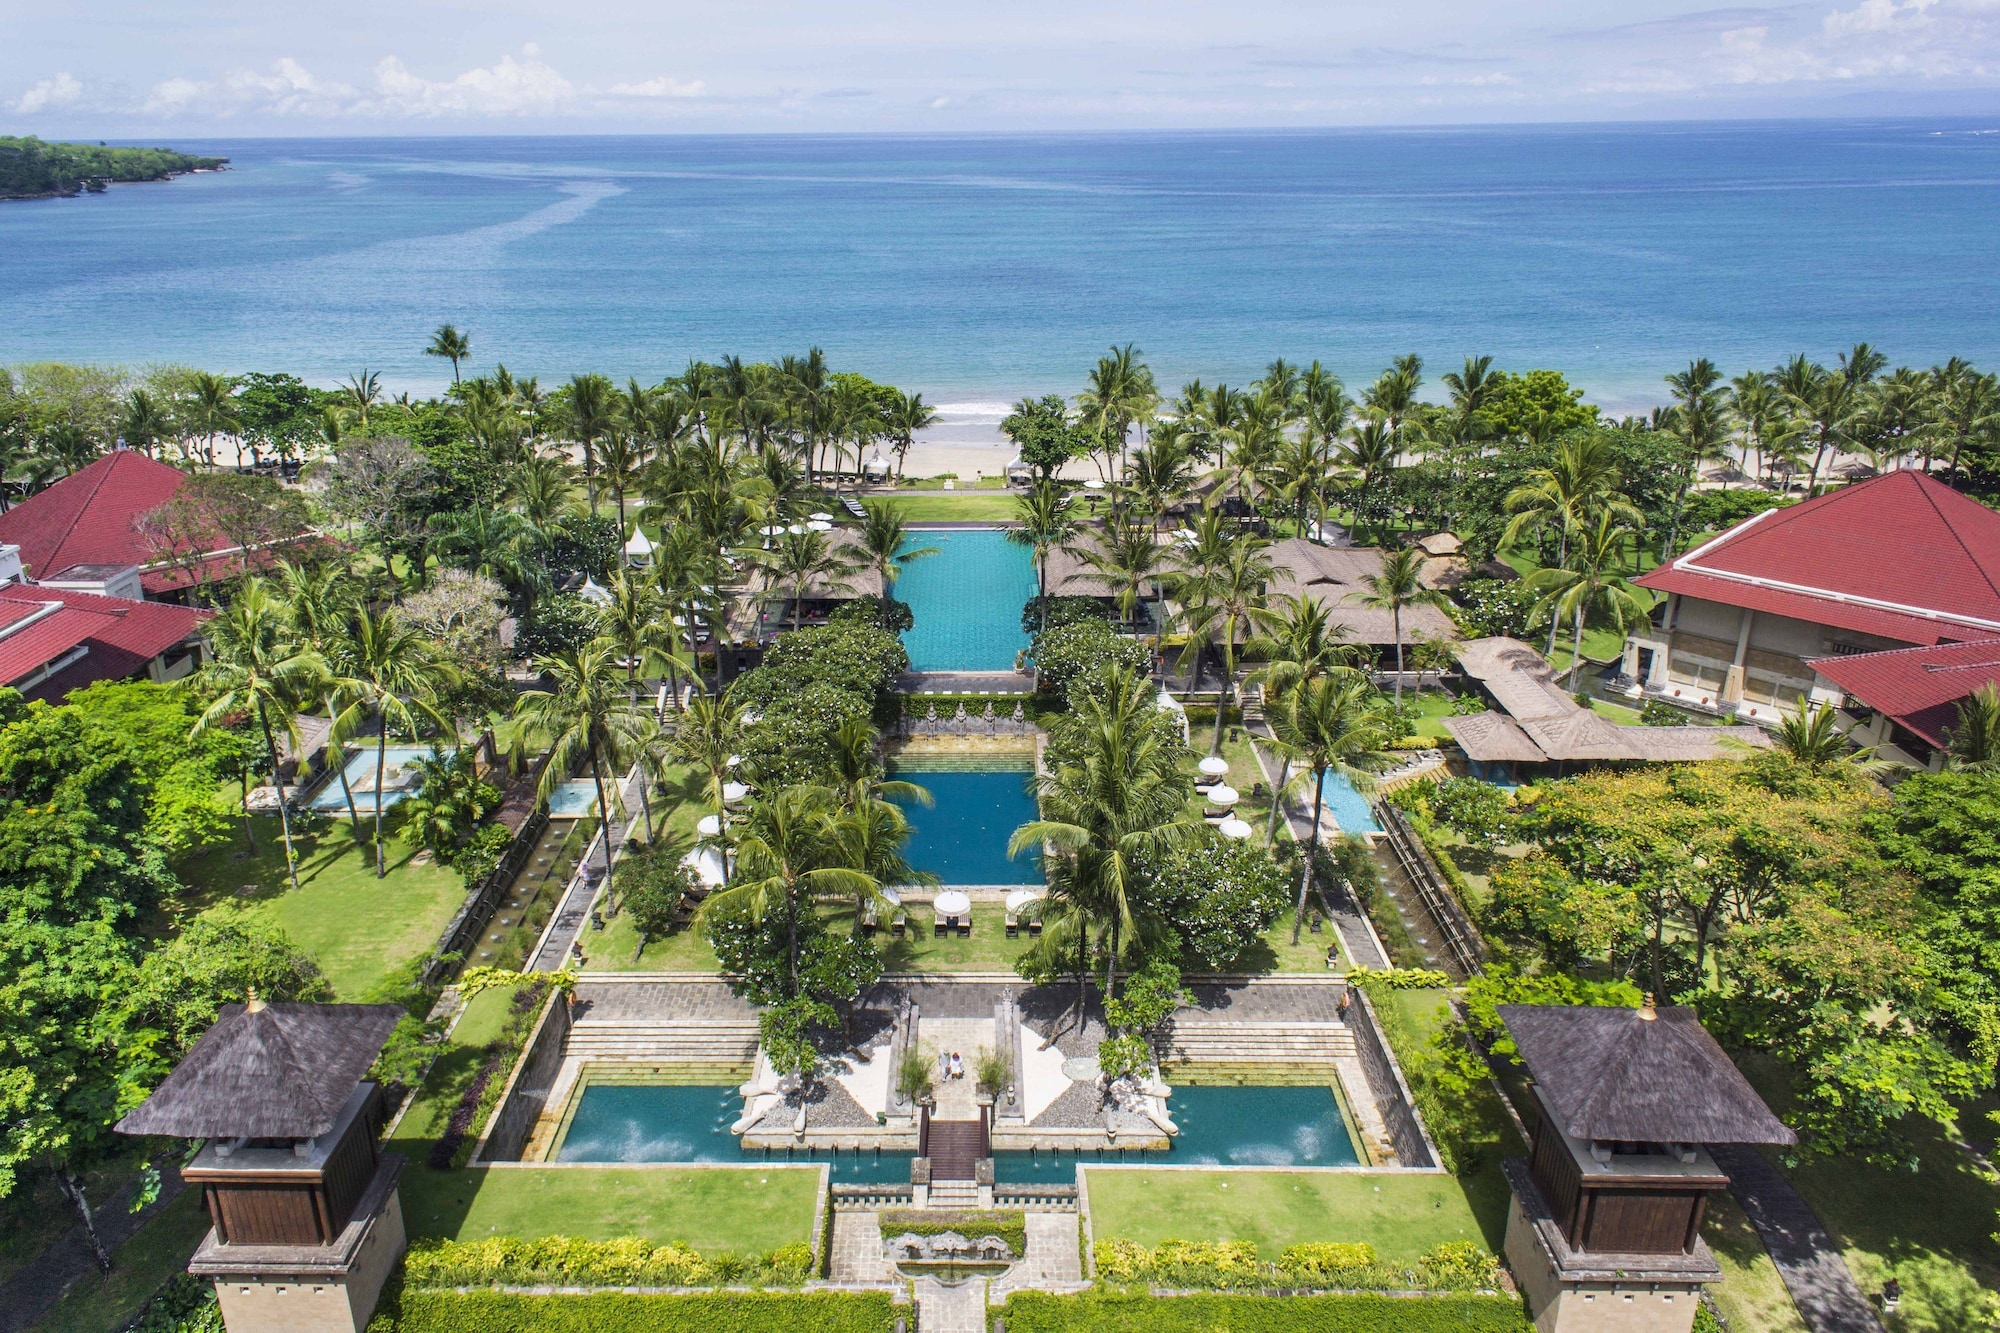 InterContinental Bali Resort, Badung